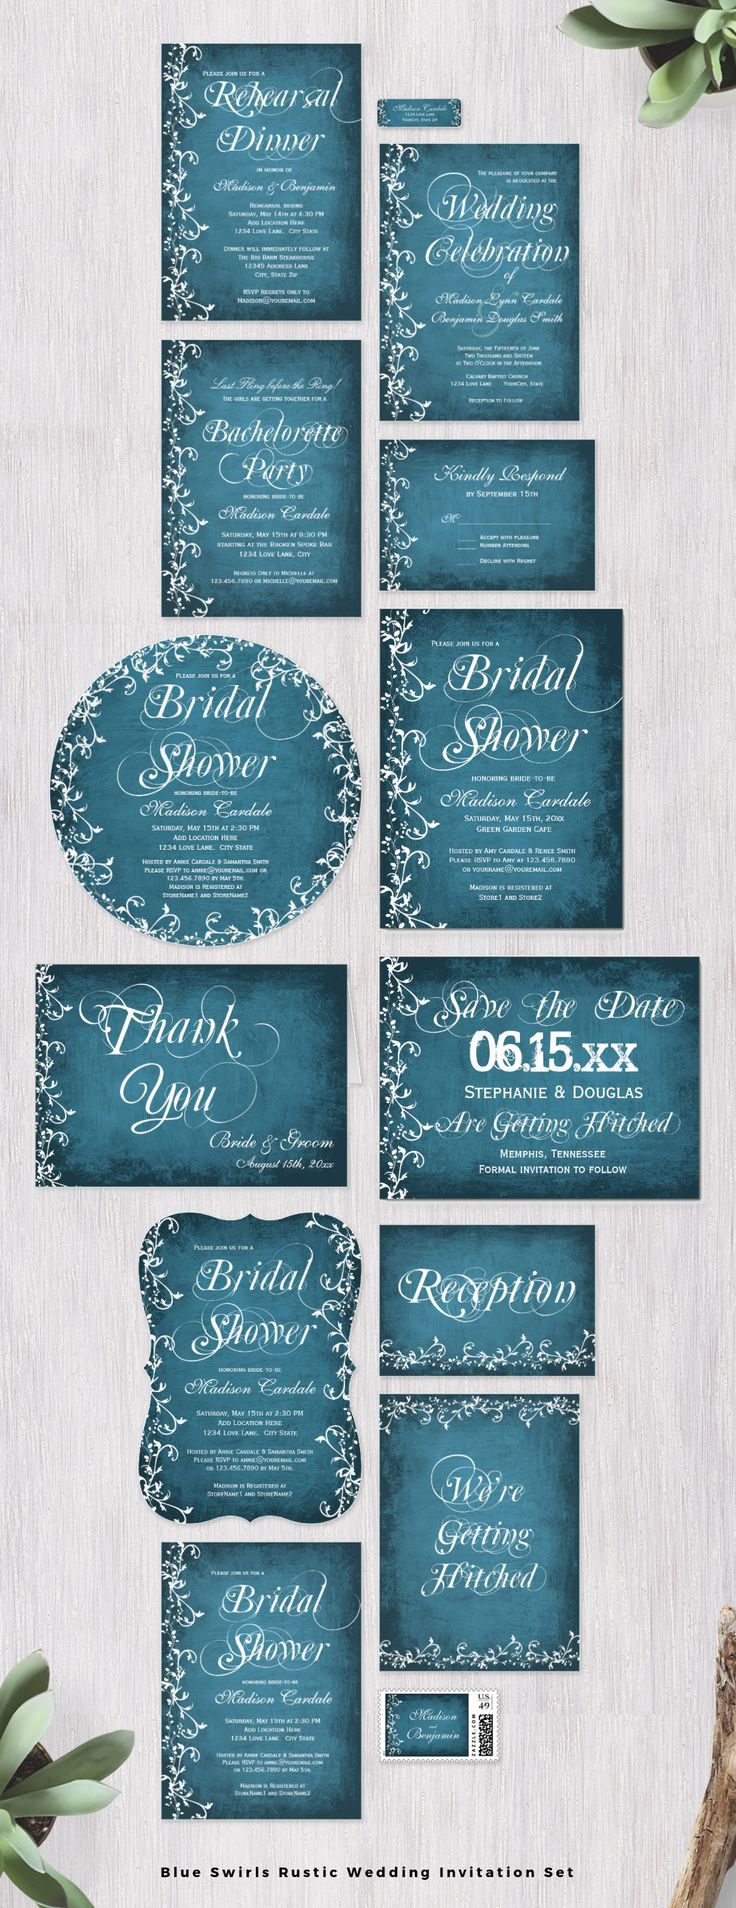 rustic wedding invitations do it yourself%0A Blue Swirls Rustic Wedding Invitation Set with a distressed blue background  with elegant floral swirls